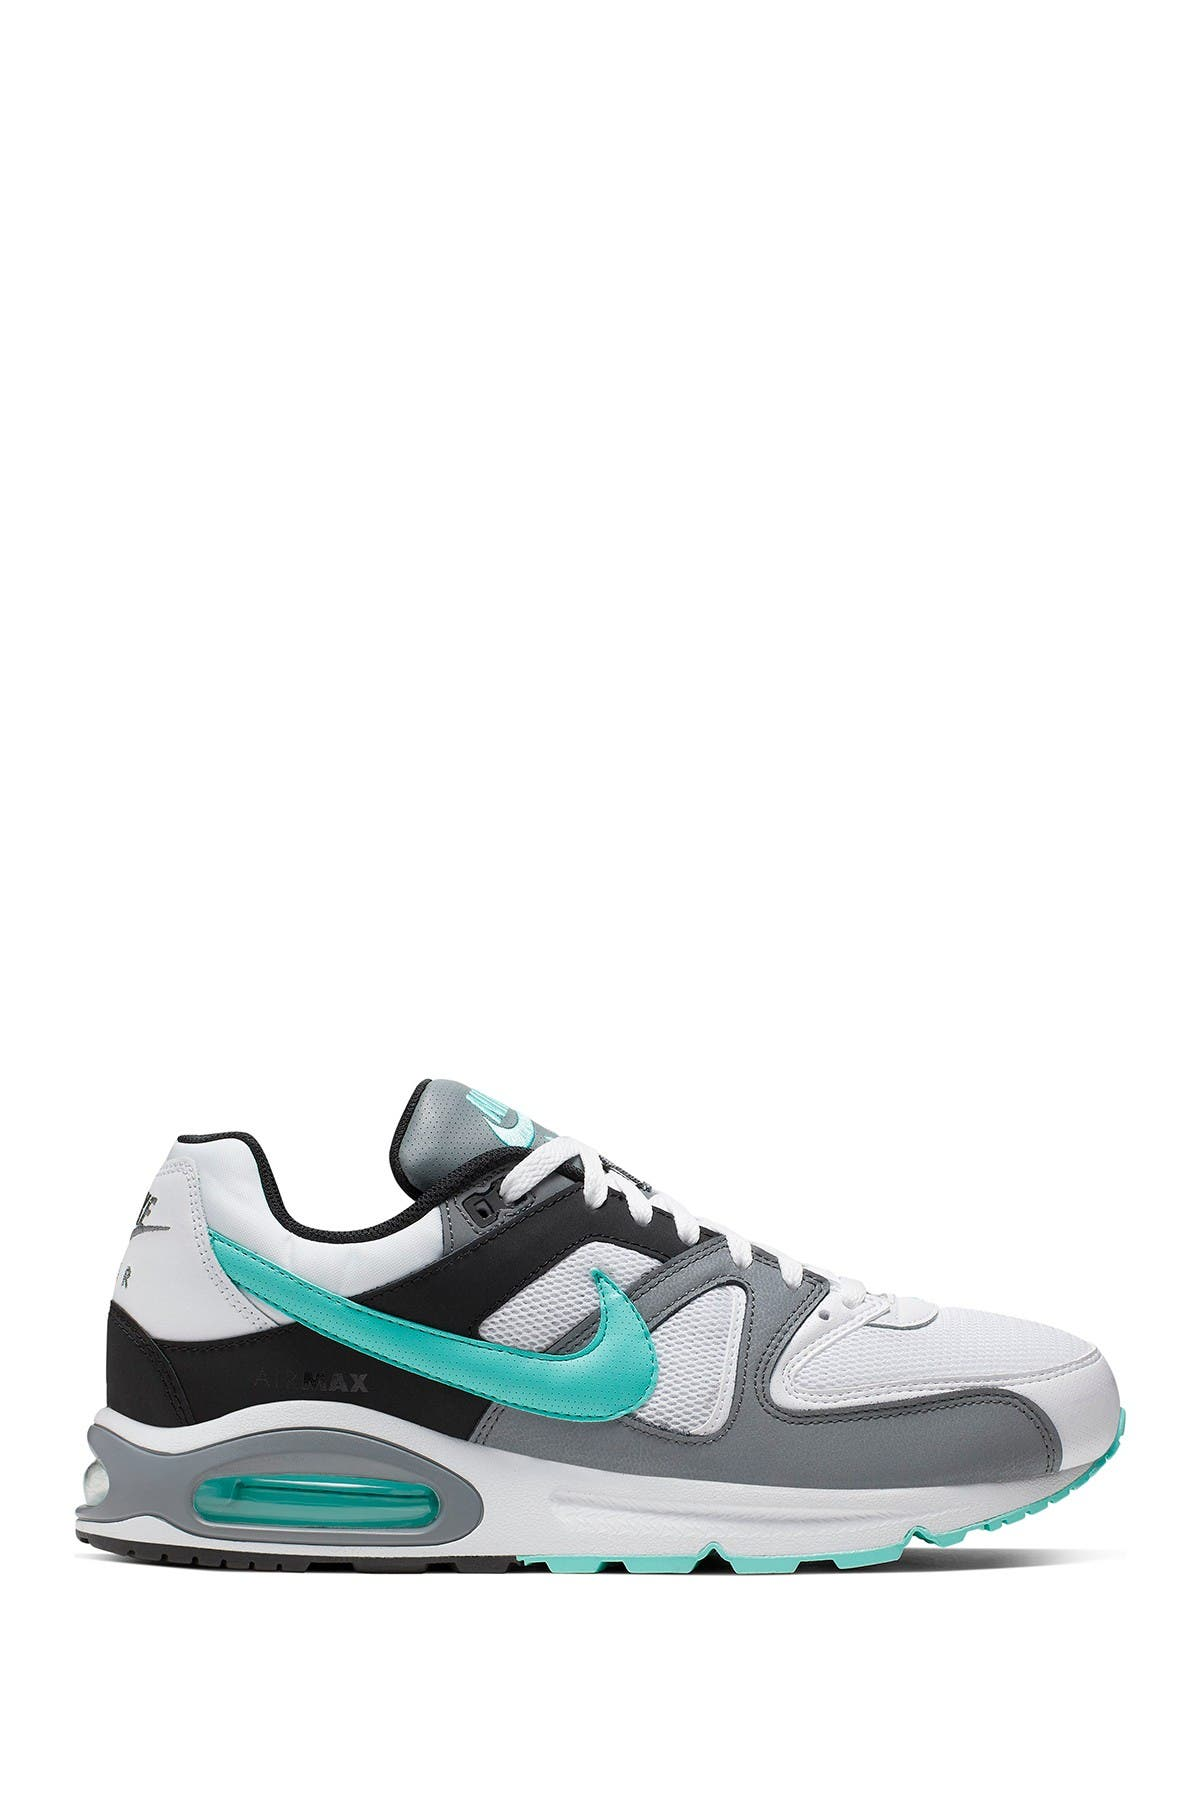 Image of Nike Air Max Command Sneaker